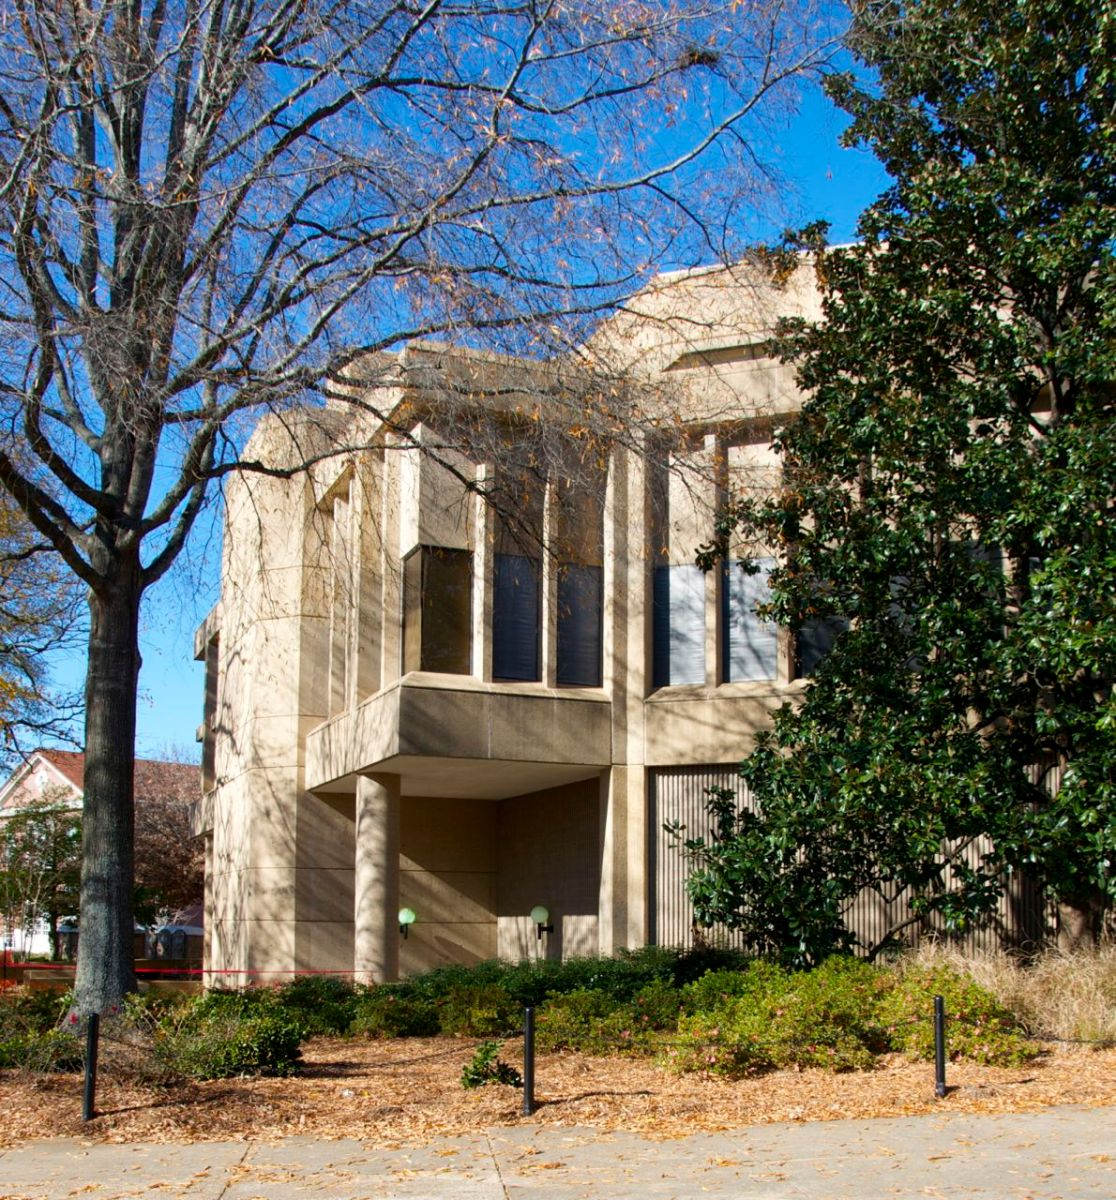 Suzassippi's Mississippi: Beauty in Brutalism?